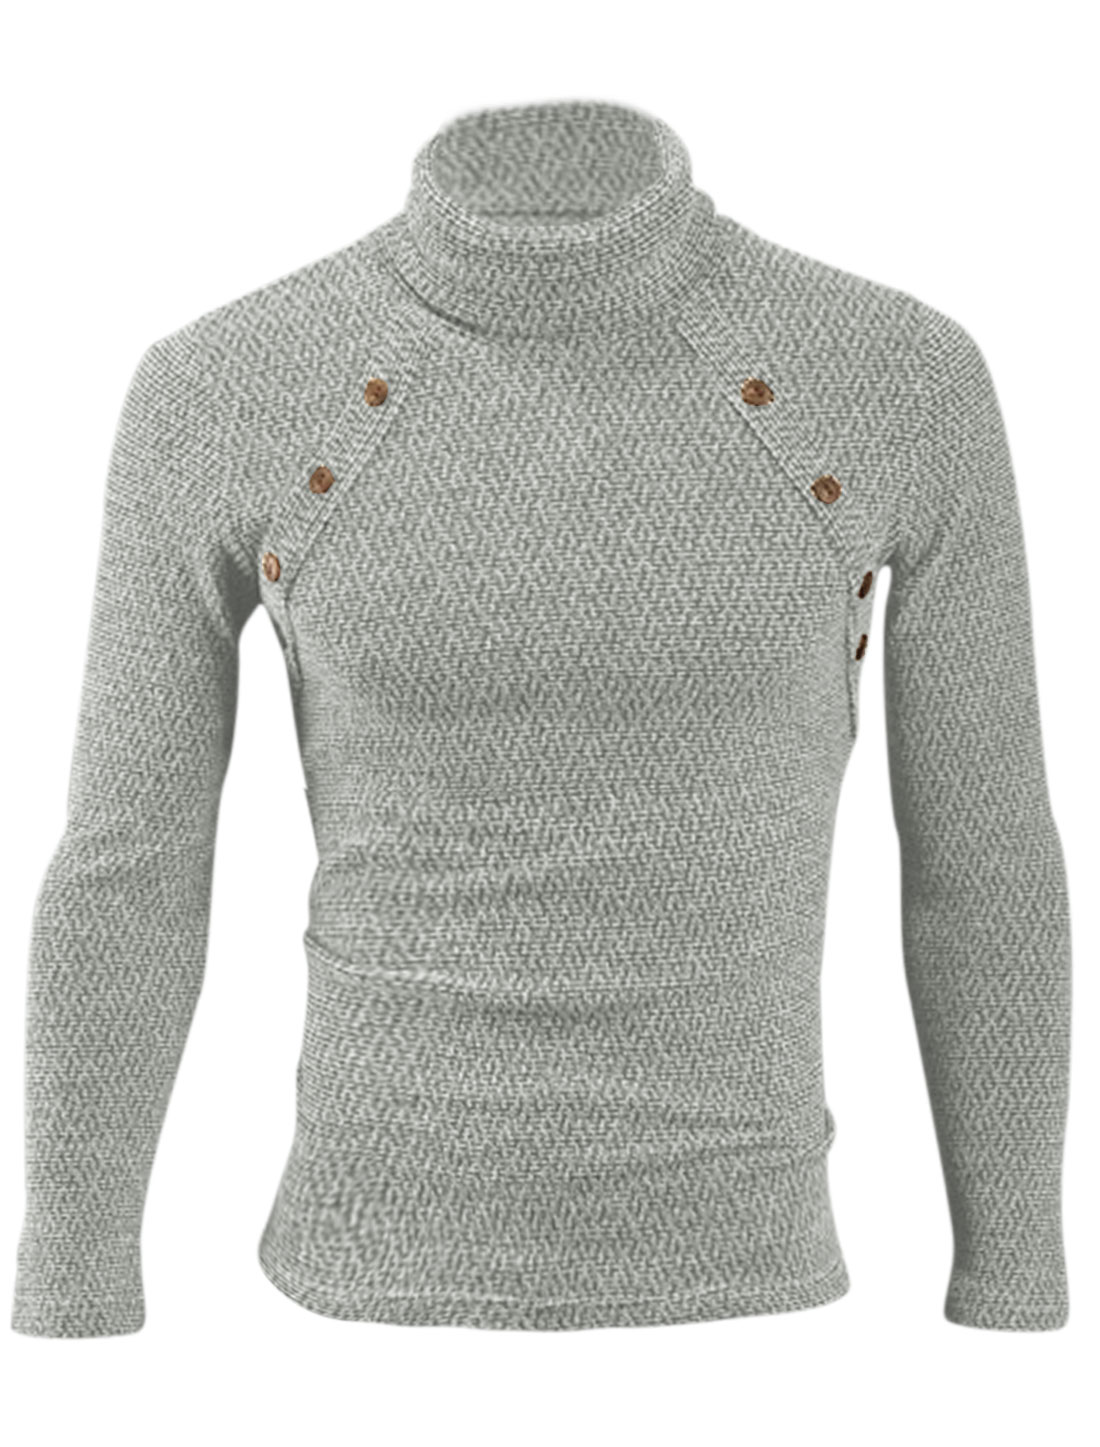 Turtle Neck Buttons Decor Casual Knit Shirt for Men Heather Gray M